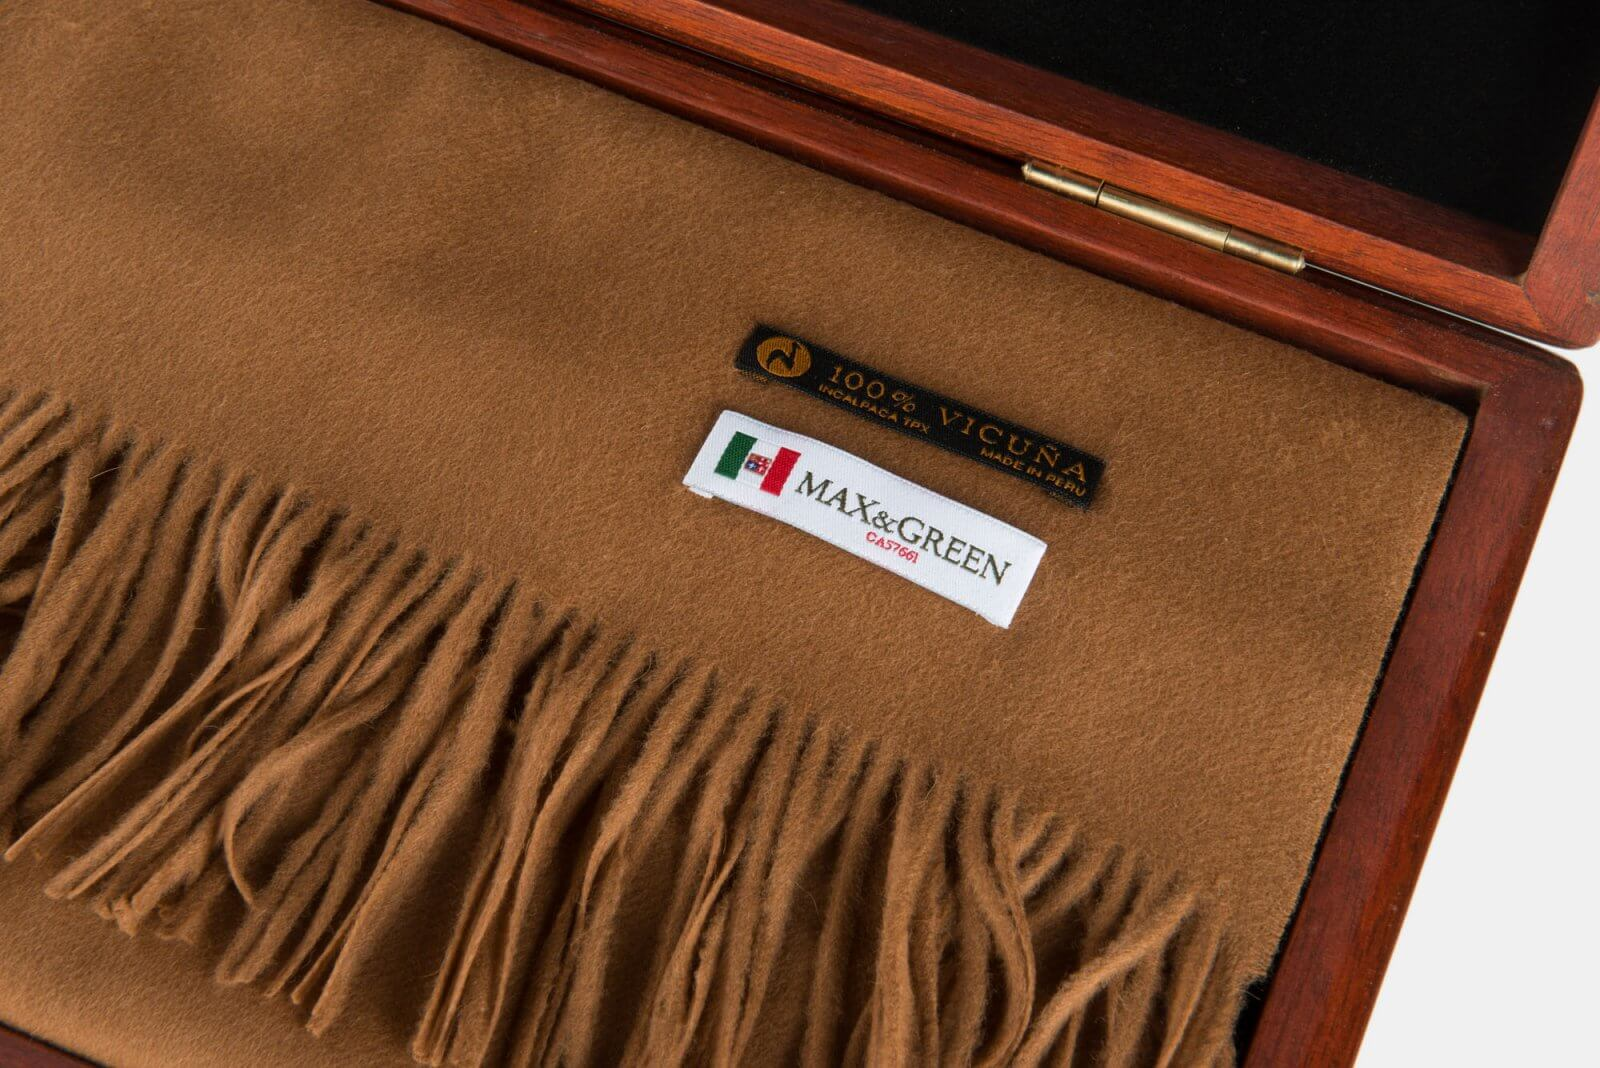 Finest fabric in the world; Vicuna scarf